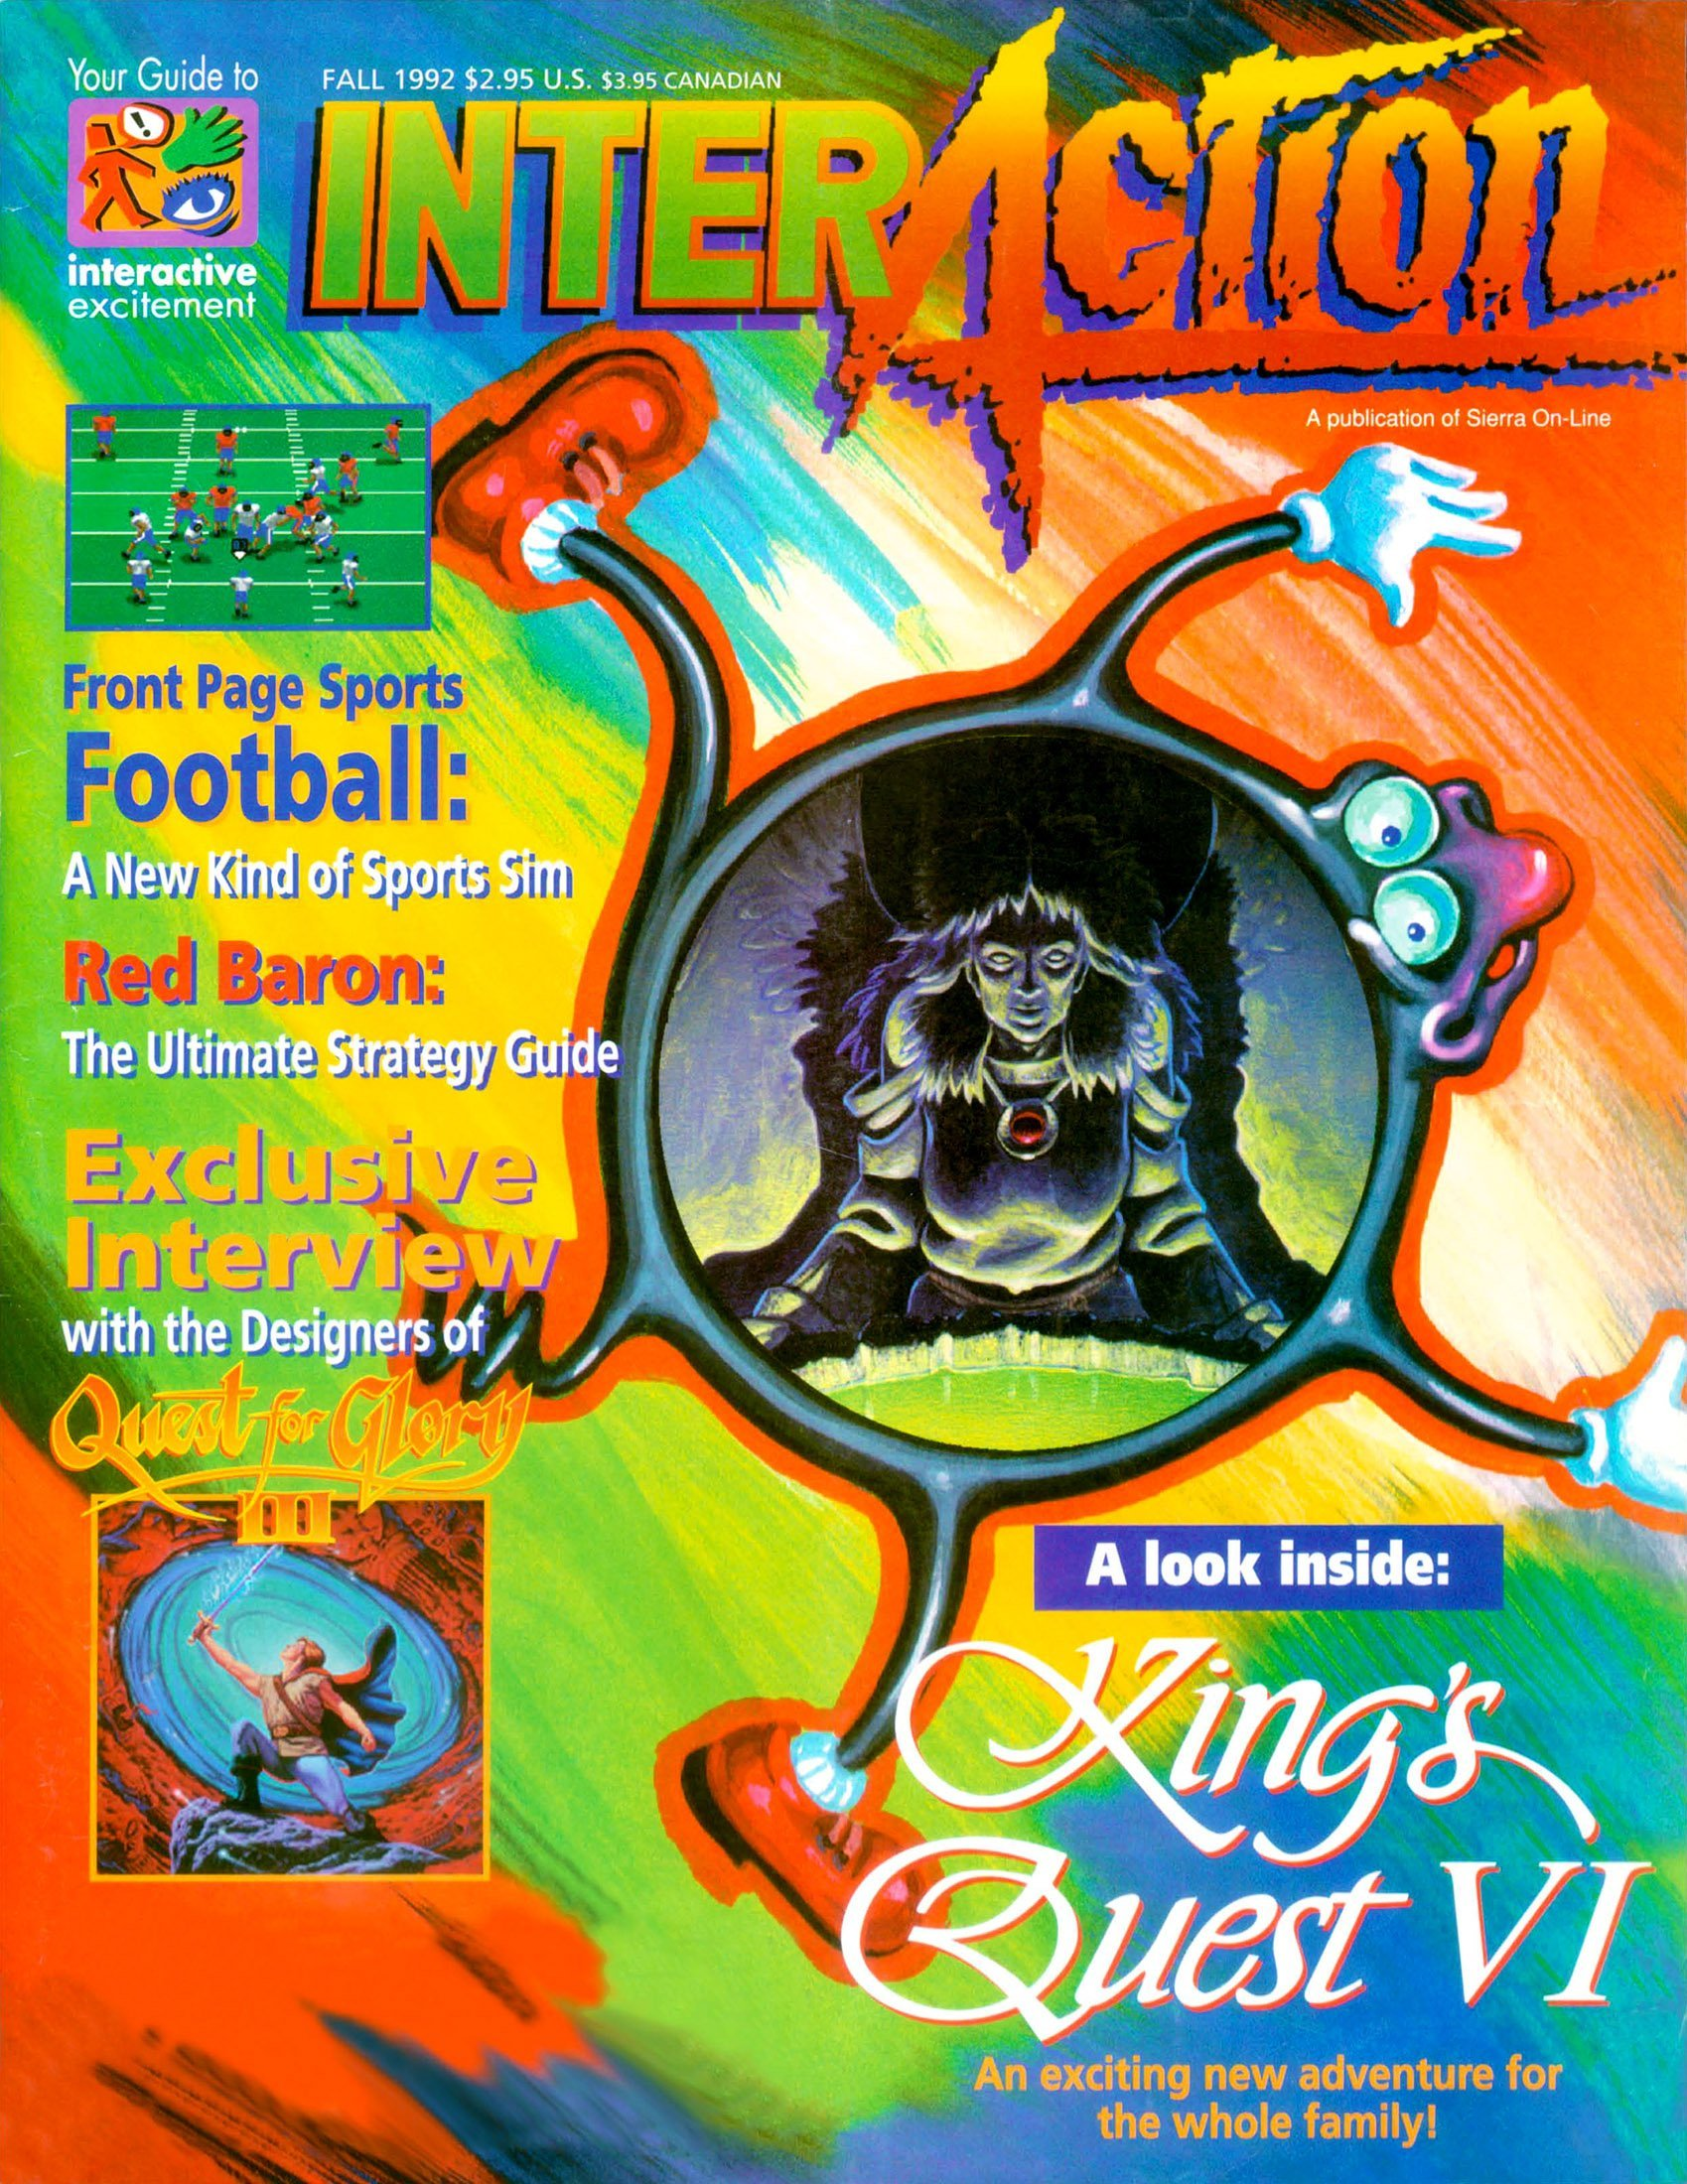 InterAction Issue 15 (Volume 5 Number 3) Fall 1992